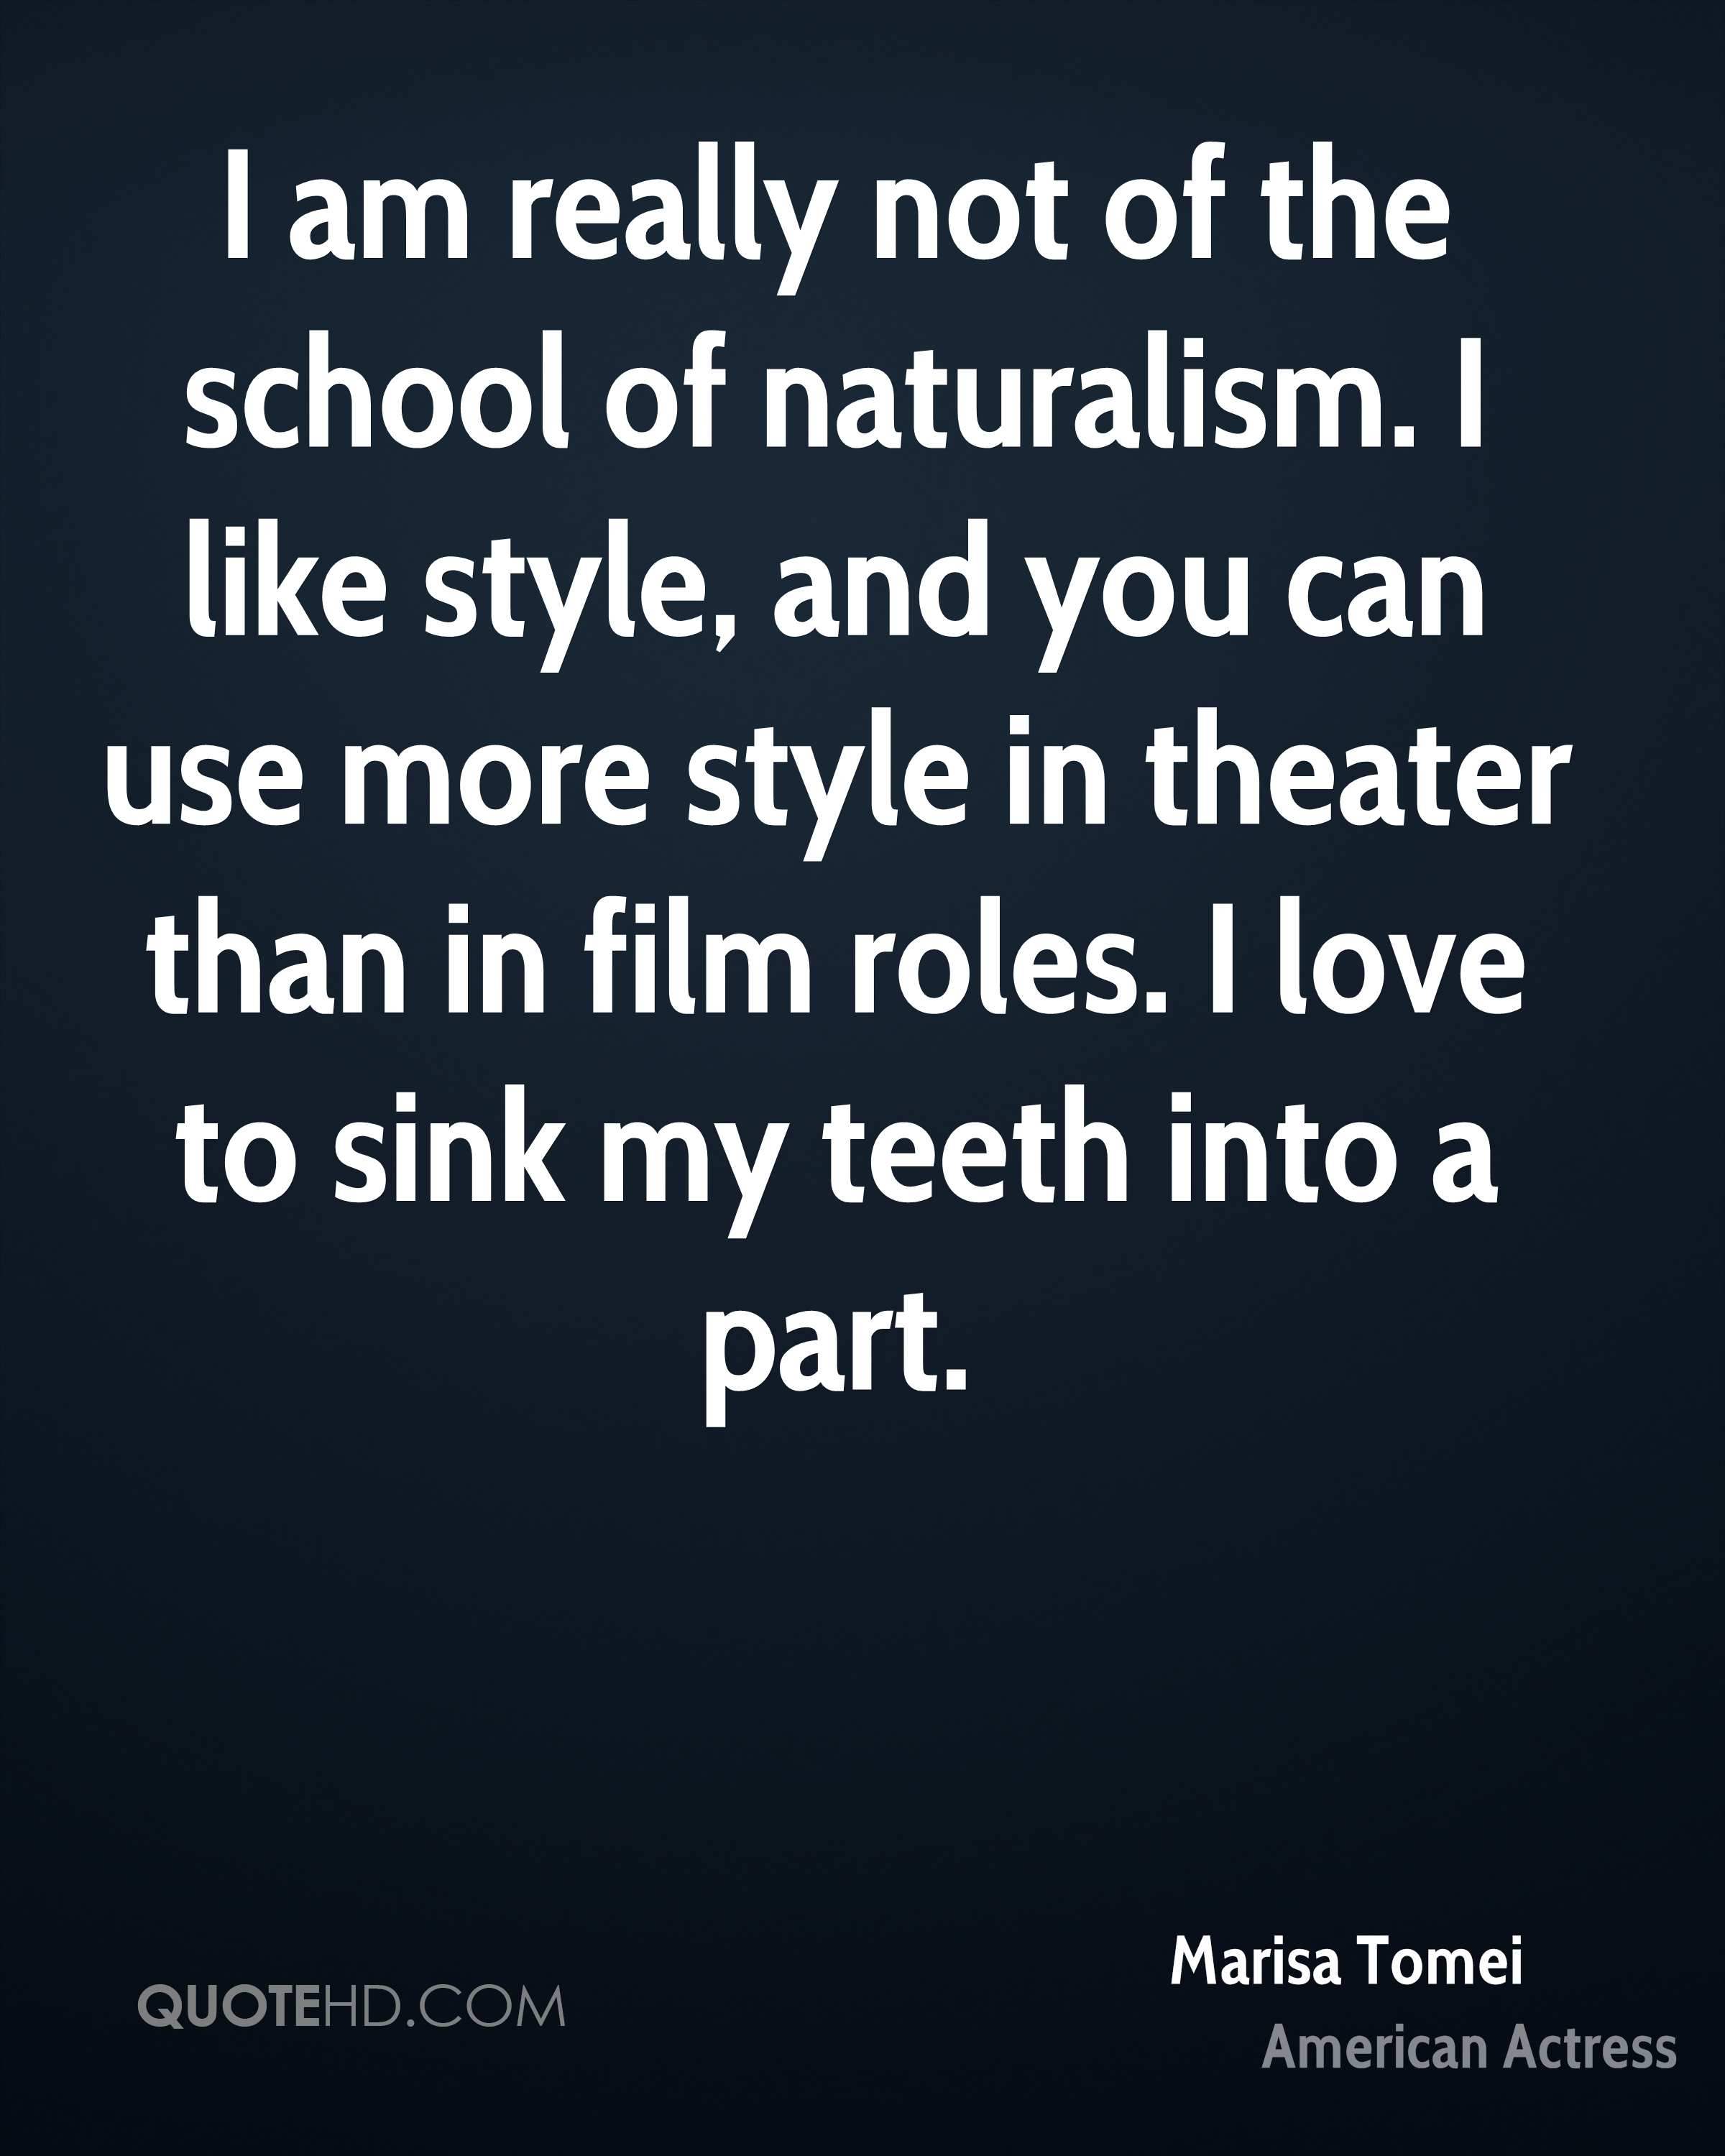 I am really not of the school of naturalism. I like style, and you can use more style in theater than in film roles. I love to sink my teeth into a part.